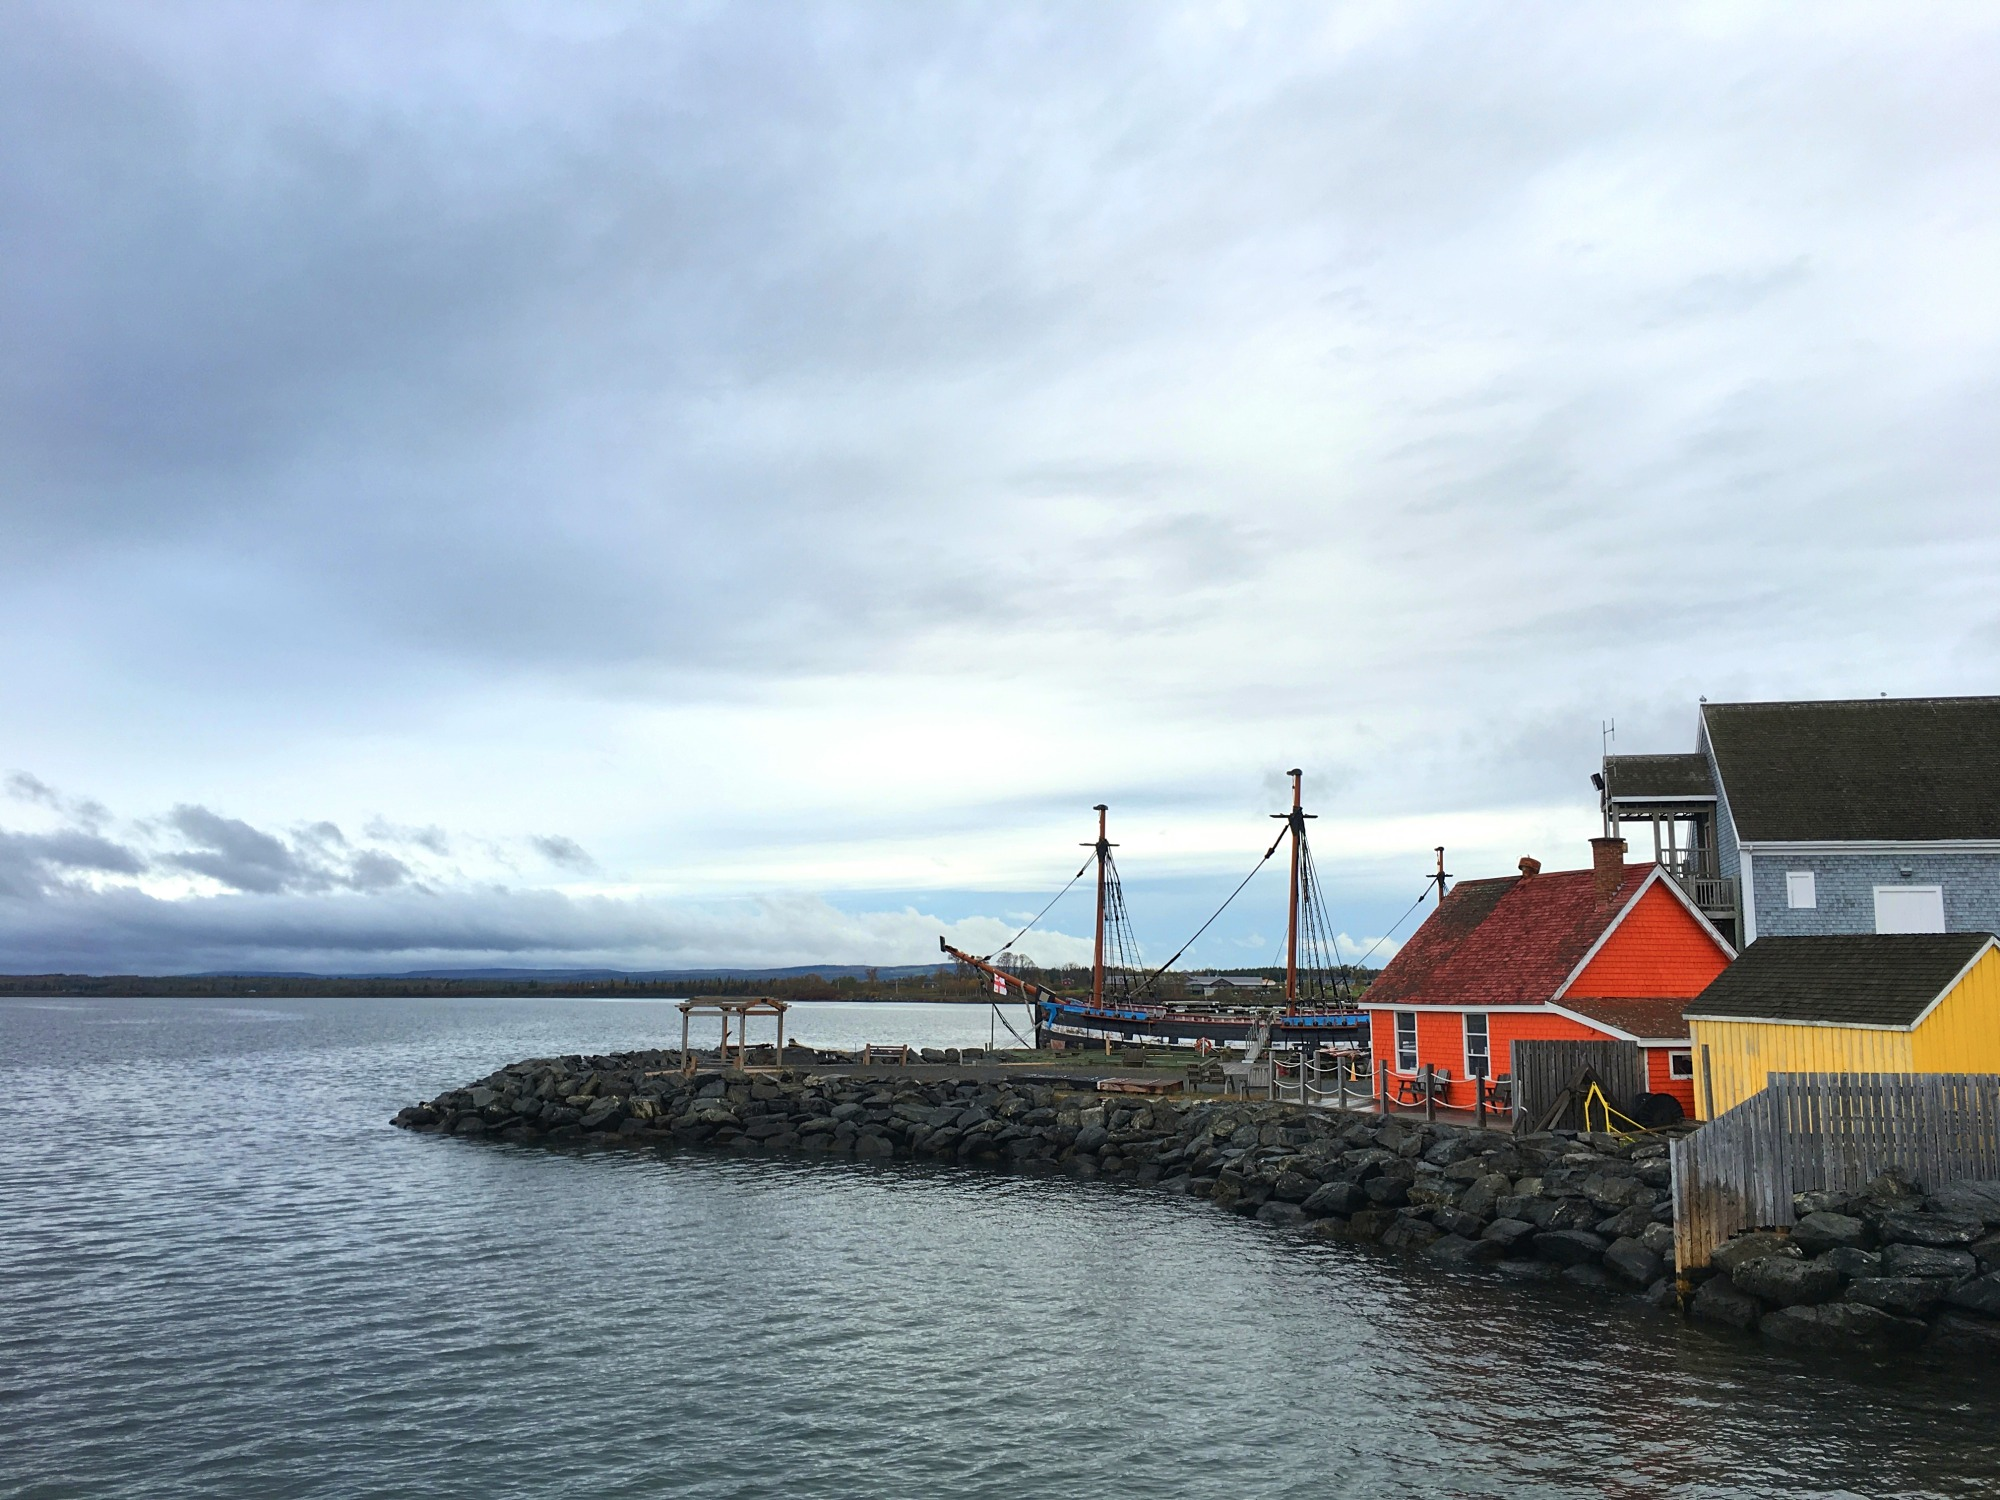 How to Have a Successful First Fam Tour: Lessons Learned from a Trip Through Nova Scotia